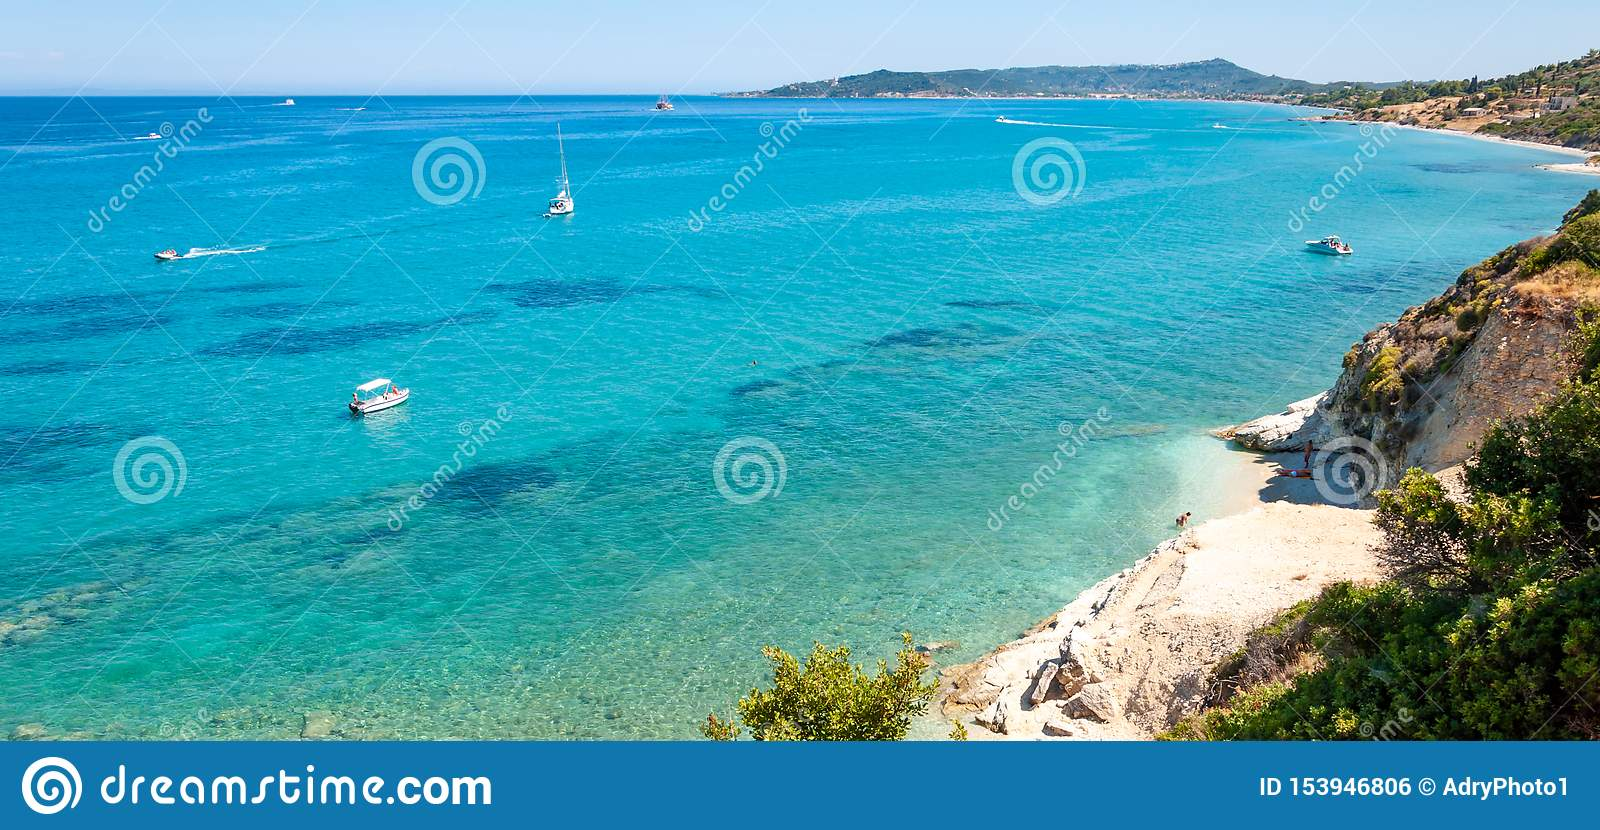 Zakynthos Island, Greece. A pearl of the Mediterranean with beaches and coasts suitable for unforgettable sea holidays